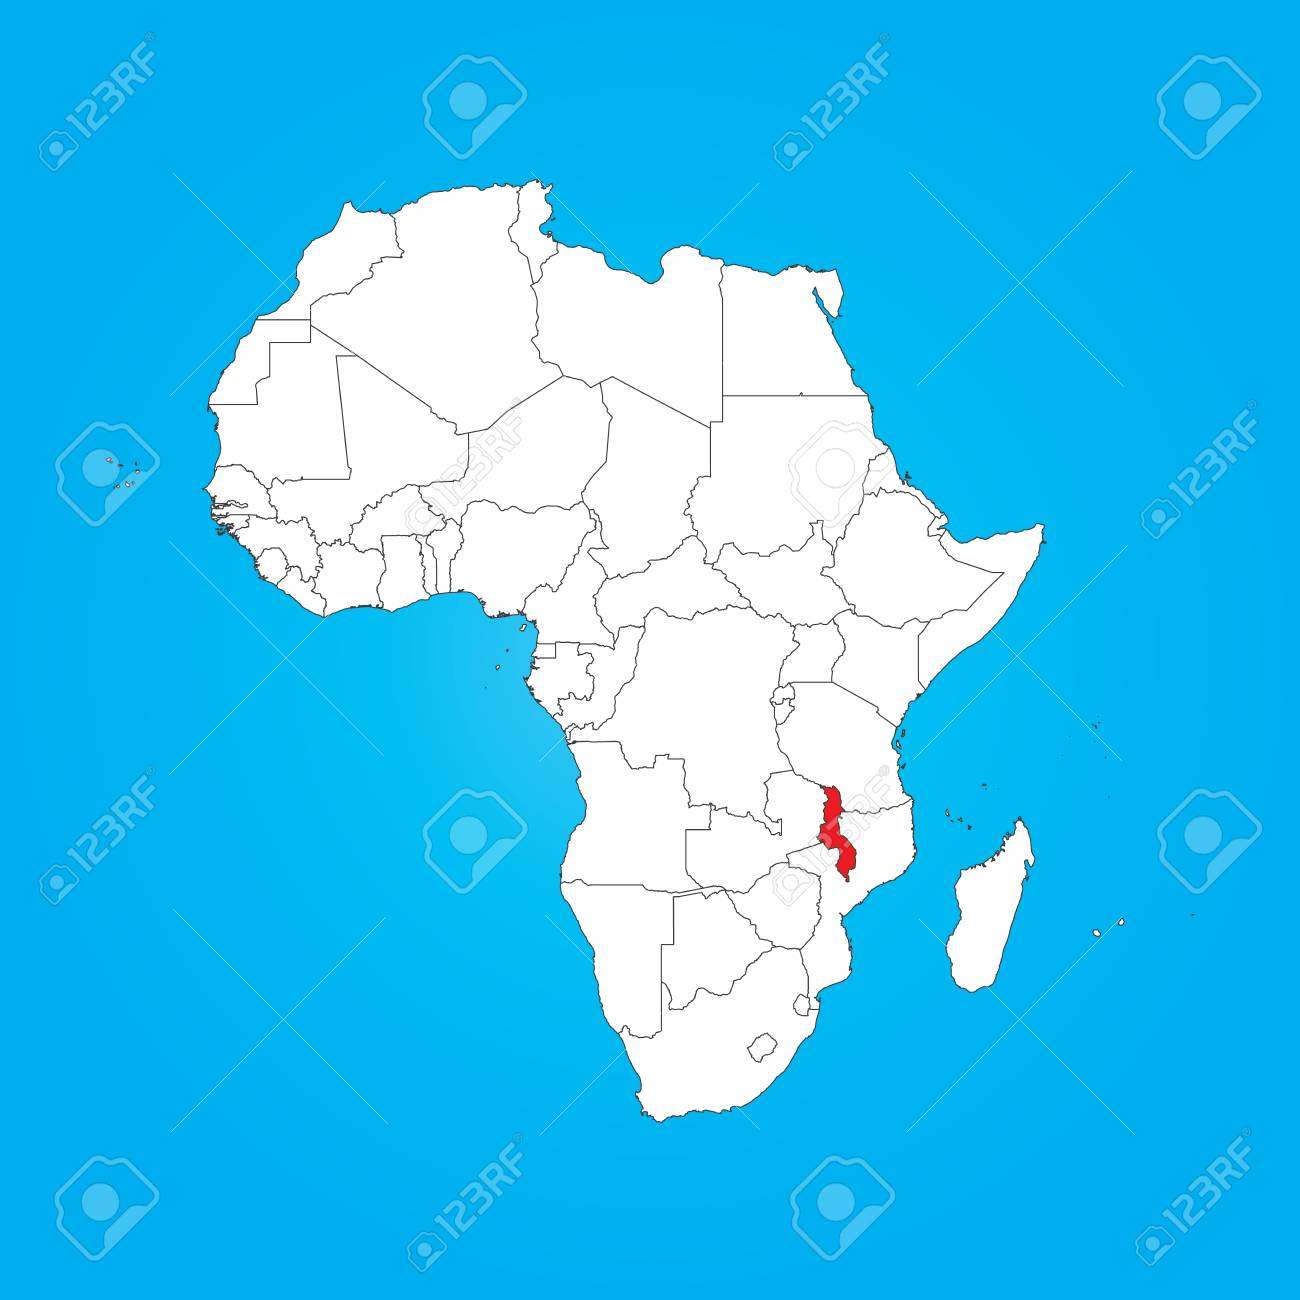 Malawi On Africa Map.A Map Of Africa With A Selected Country Of Malawi Stock Photo